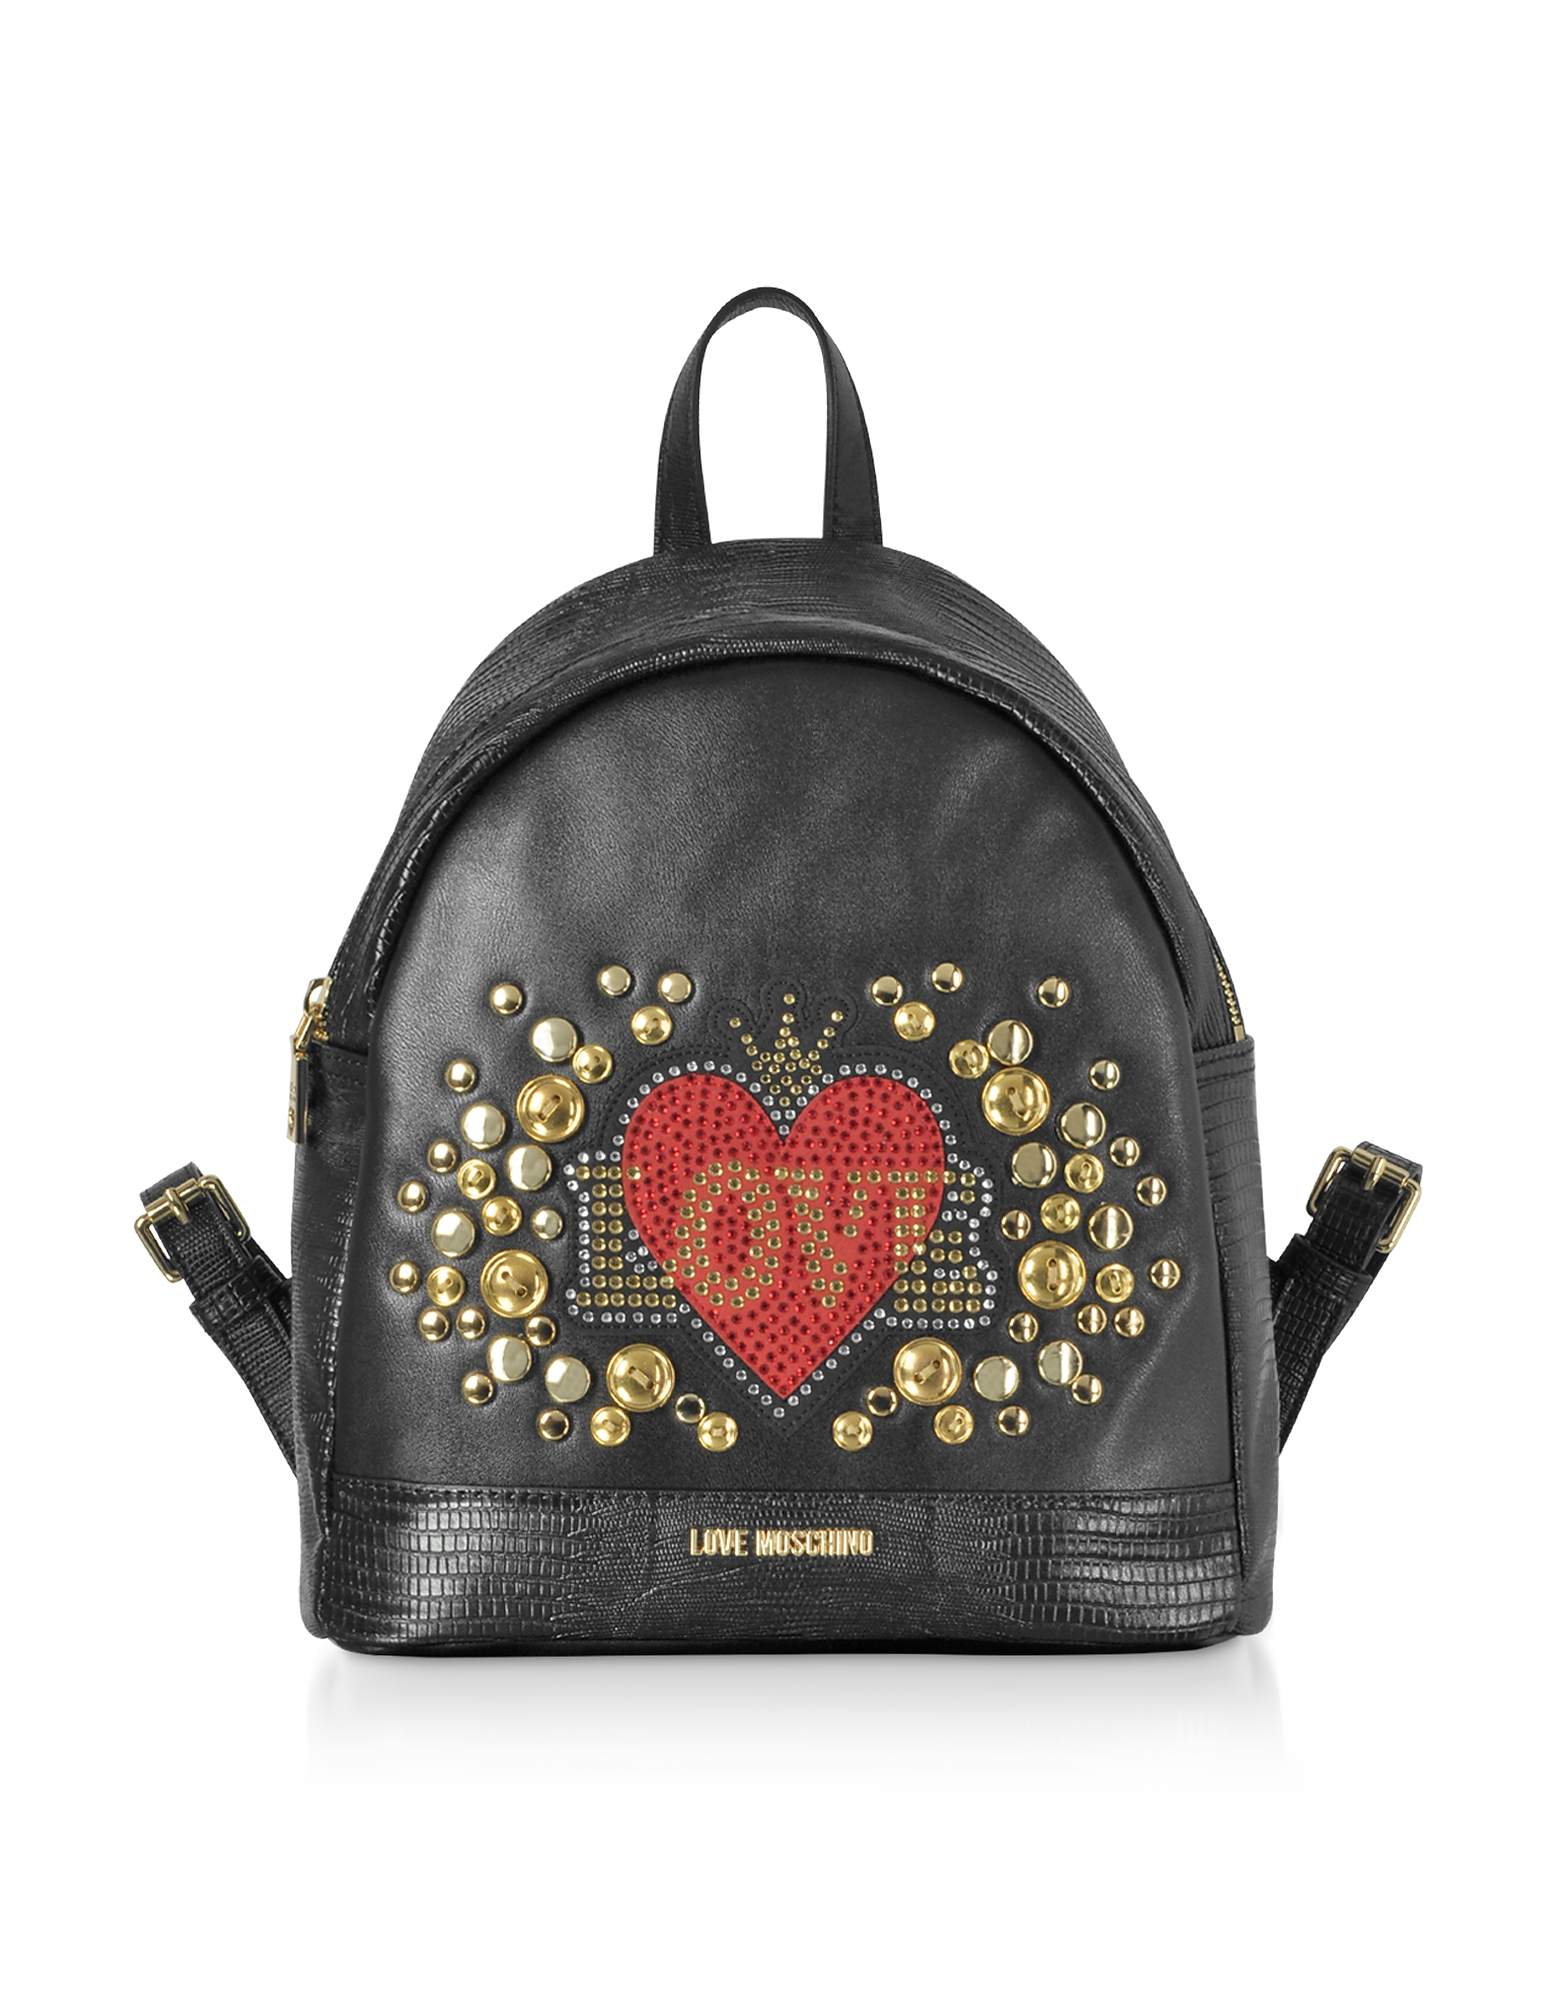 Black Eco-leather Backpack w/ Heart Crystals